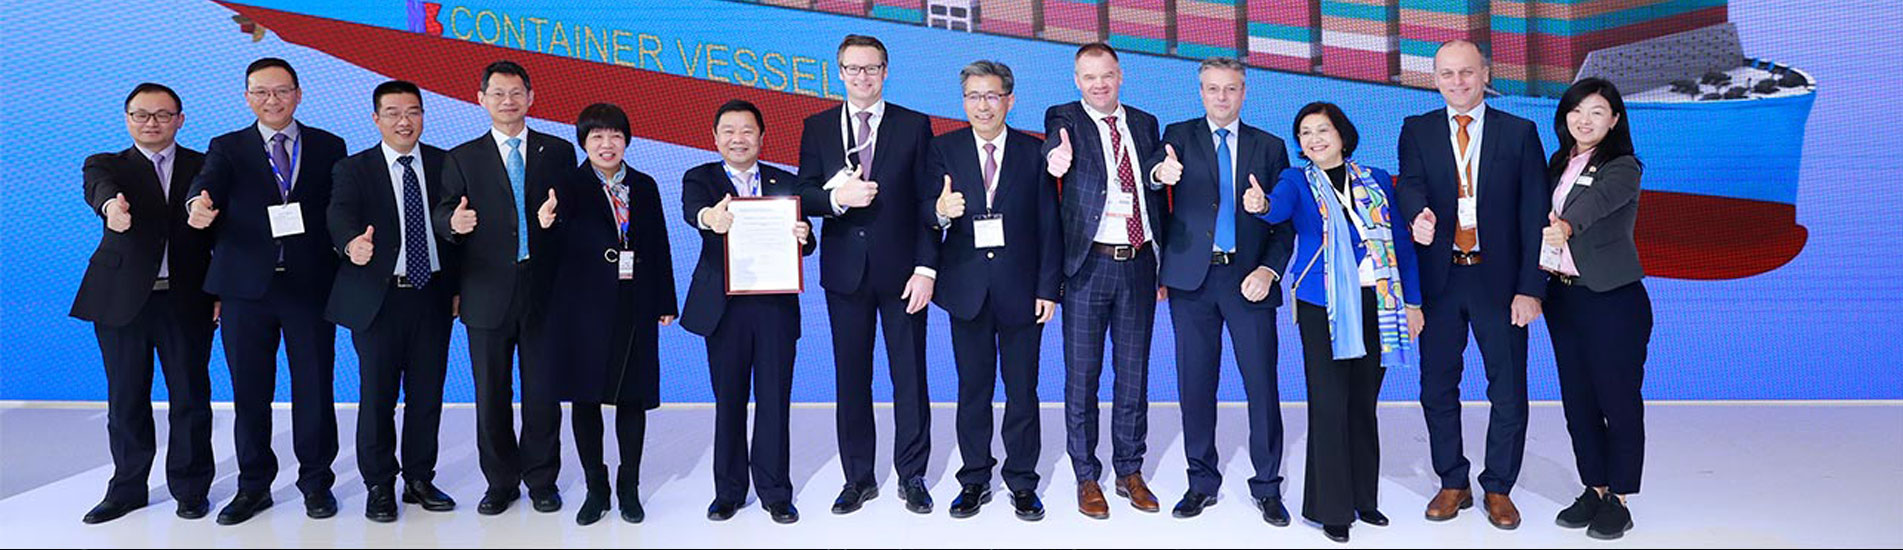 Knut Ørbeck-Nilssen (7th from left), CEO DNV GL – Maritime, presented the certificate to Chen Jun, President of Hudong-Zhonghua (6th from left), at the CSSC booth in Shanghai. The witnesses included Chen Jianliang, Hudong-Zhonghua Chairman (8th from left), and Norbert Kray, DNV GL – Maritime Regional Manager for Greater China (9th from left), alongside executive members from both companies.